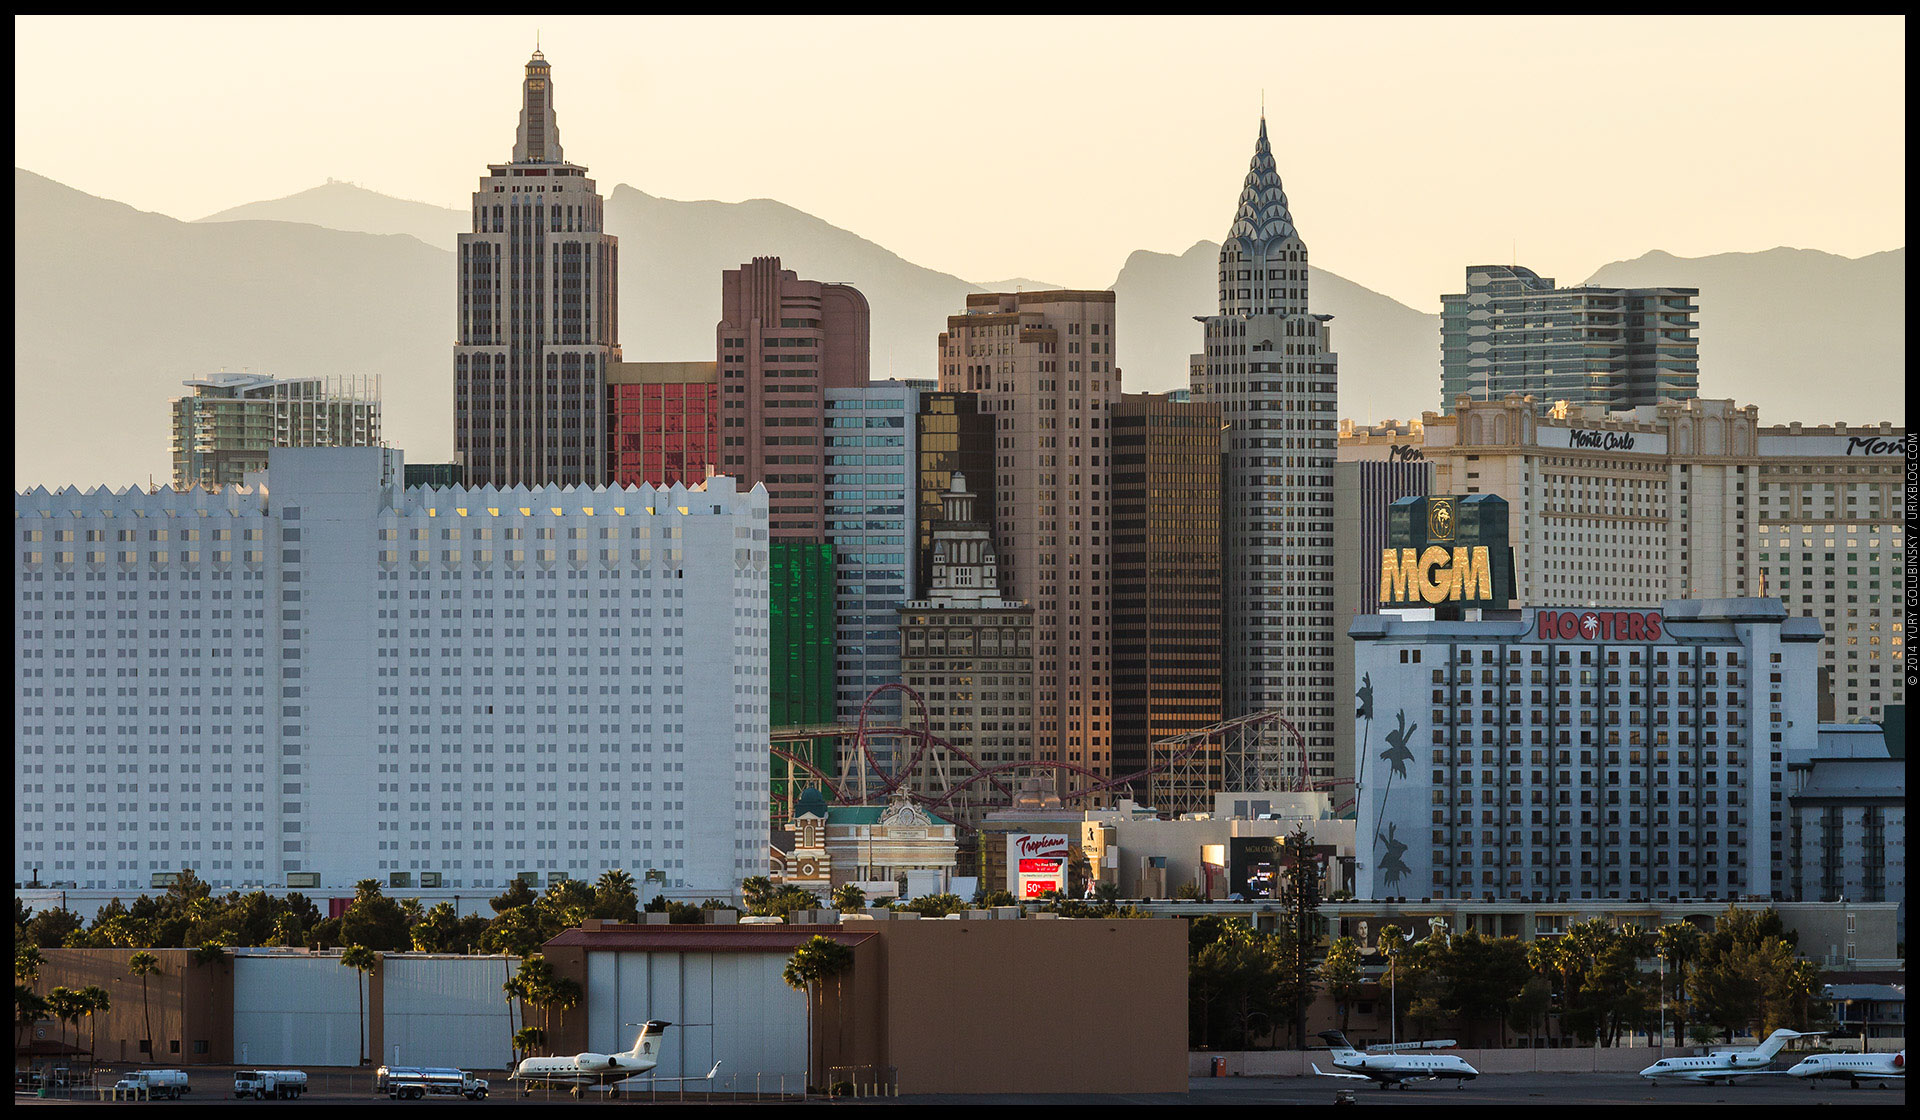 New York, casino, hotel, 2014, LAS, Las Vegas McCarran International airport, strip, LV, Clark County, USA, Nevada, panorama, horizon, city